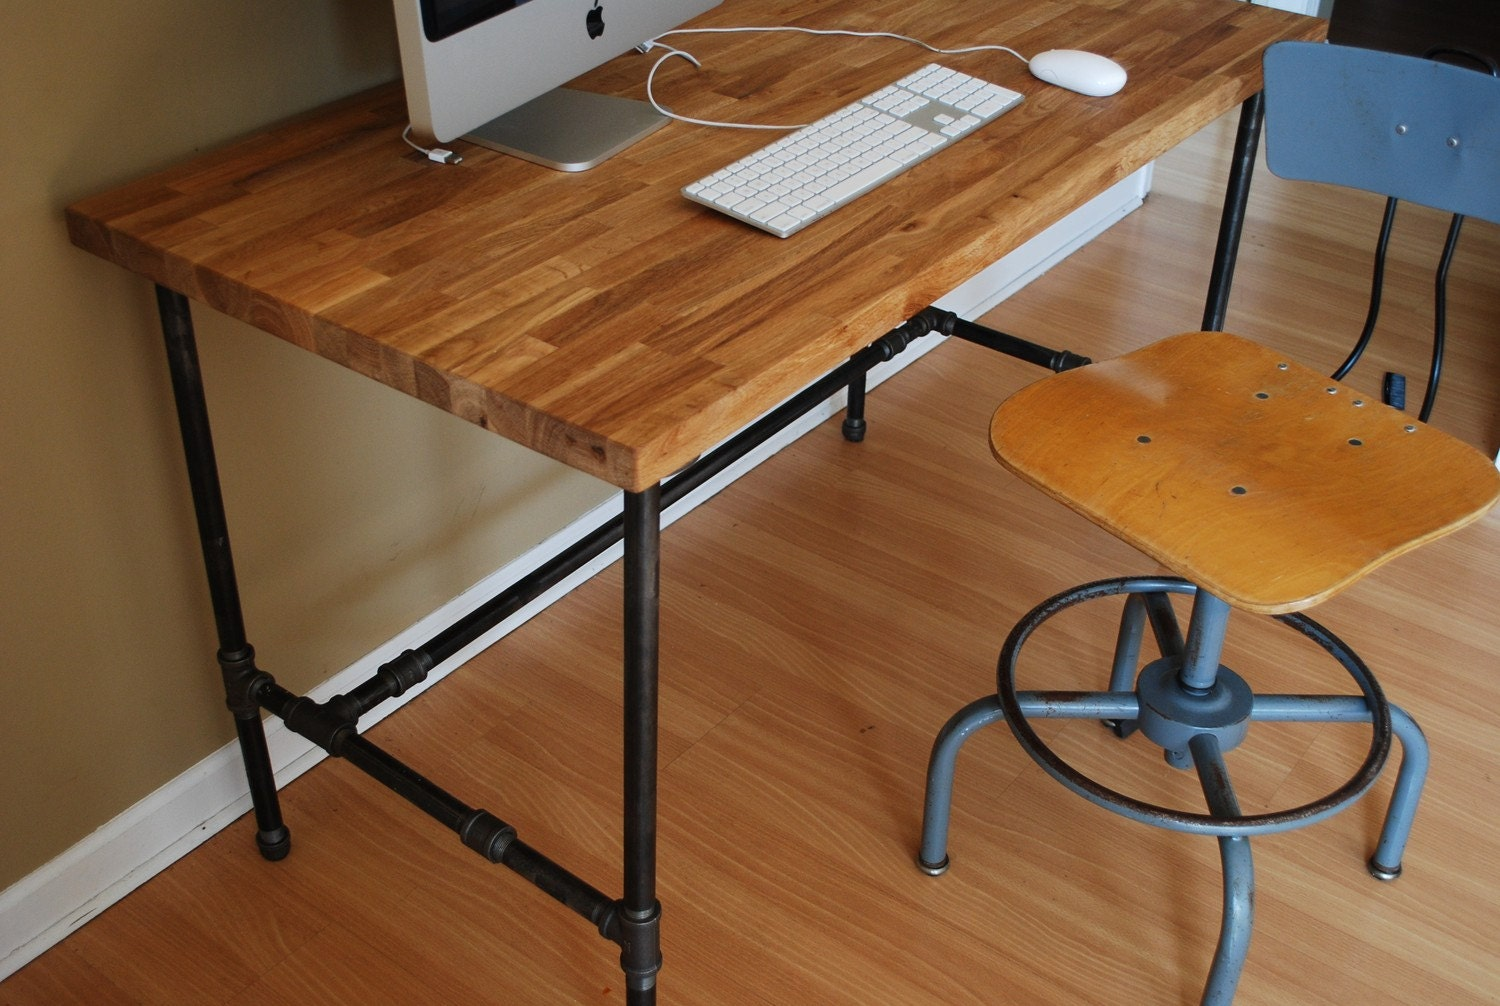 Industrial desk with Oak top and steel pipe legs by  : ilfullxfull245562393 from www.etsy.com size 1500 x 1006 jpeg 278kB